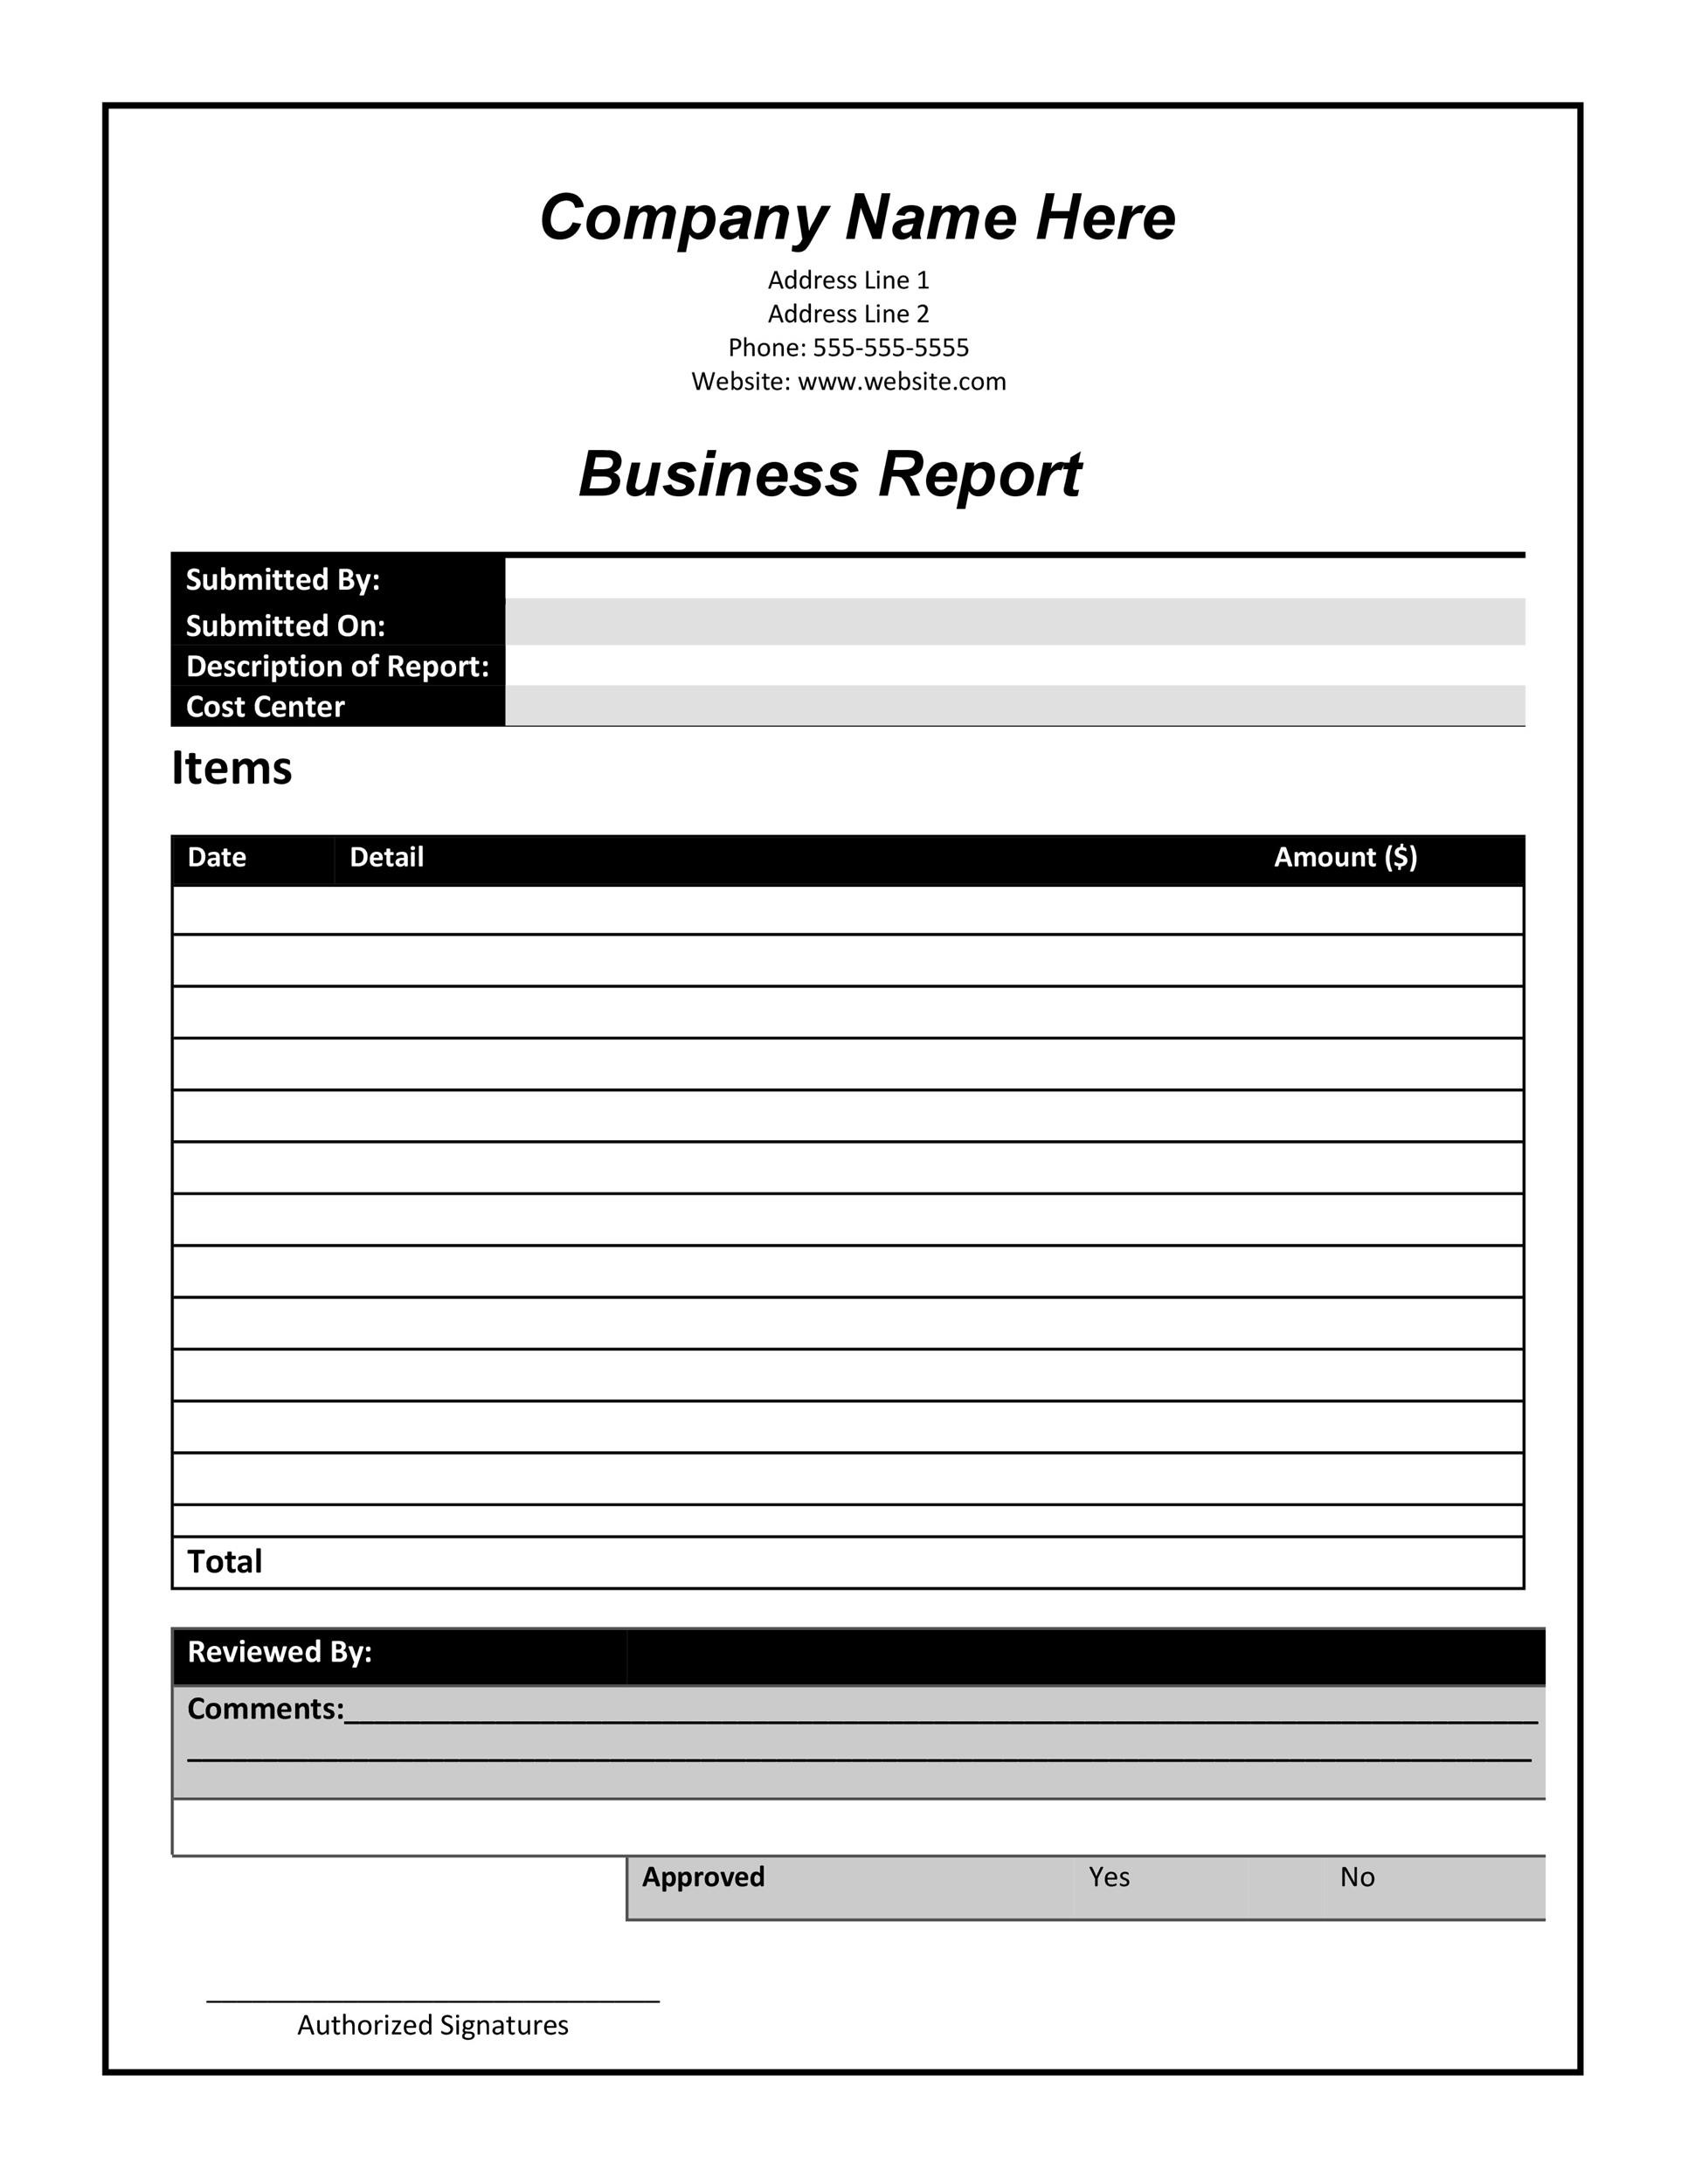 Free business report template 01